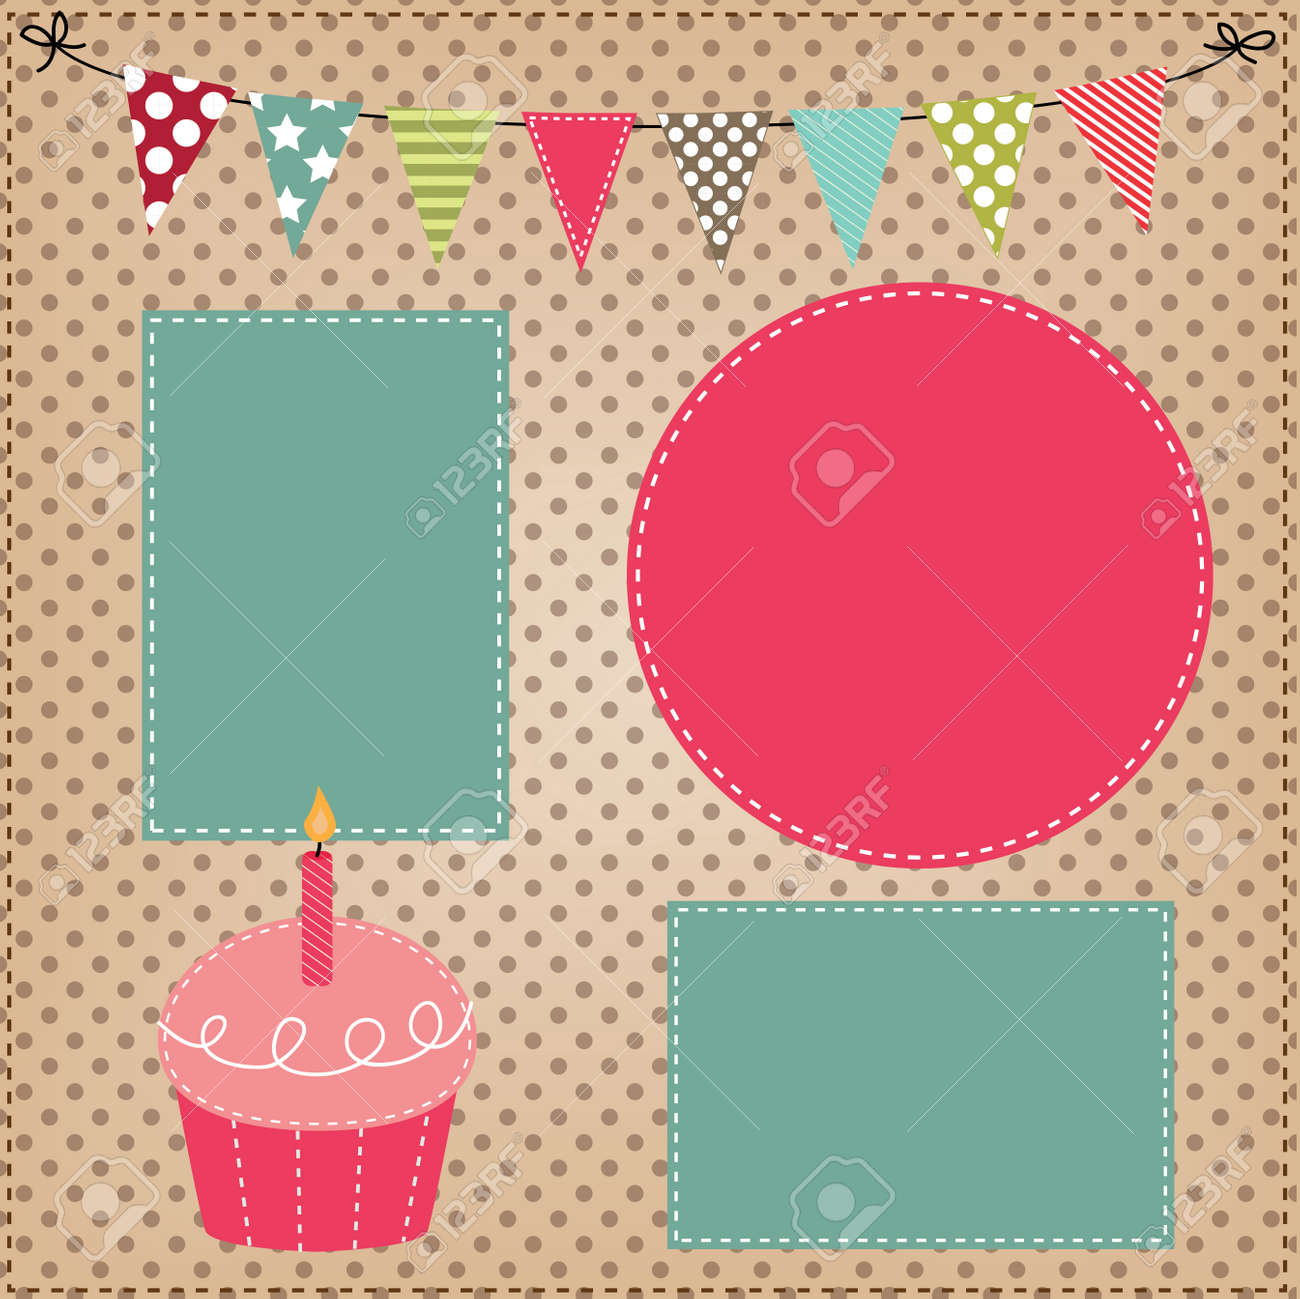 Cupcake template with bunting or flags and photo frames for birthday cupcake template with bunting or flags and photo frames for birthday party or bakery menus stock maxwellsz